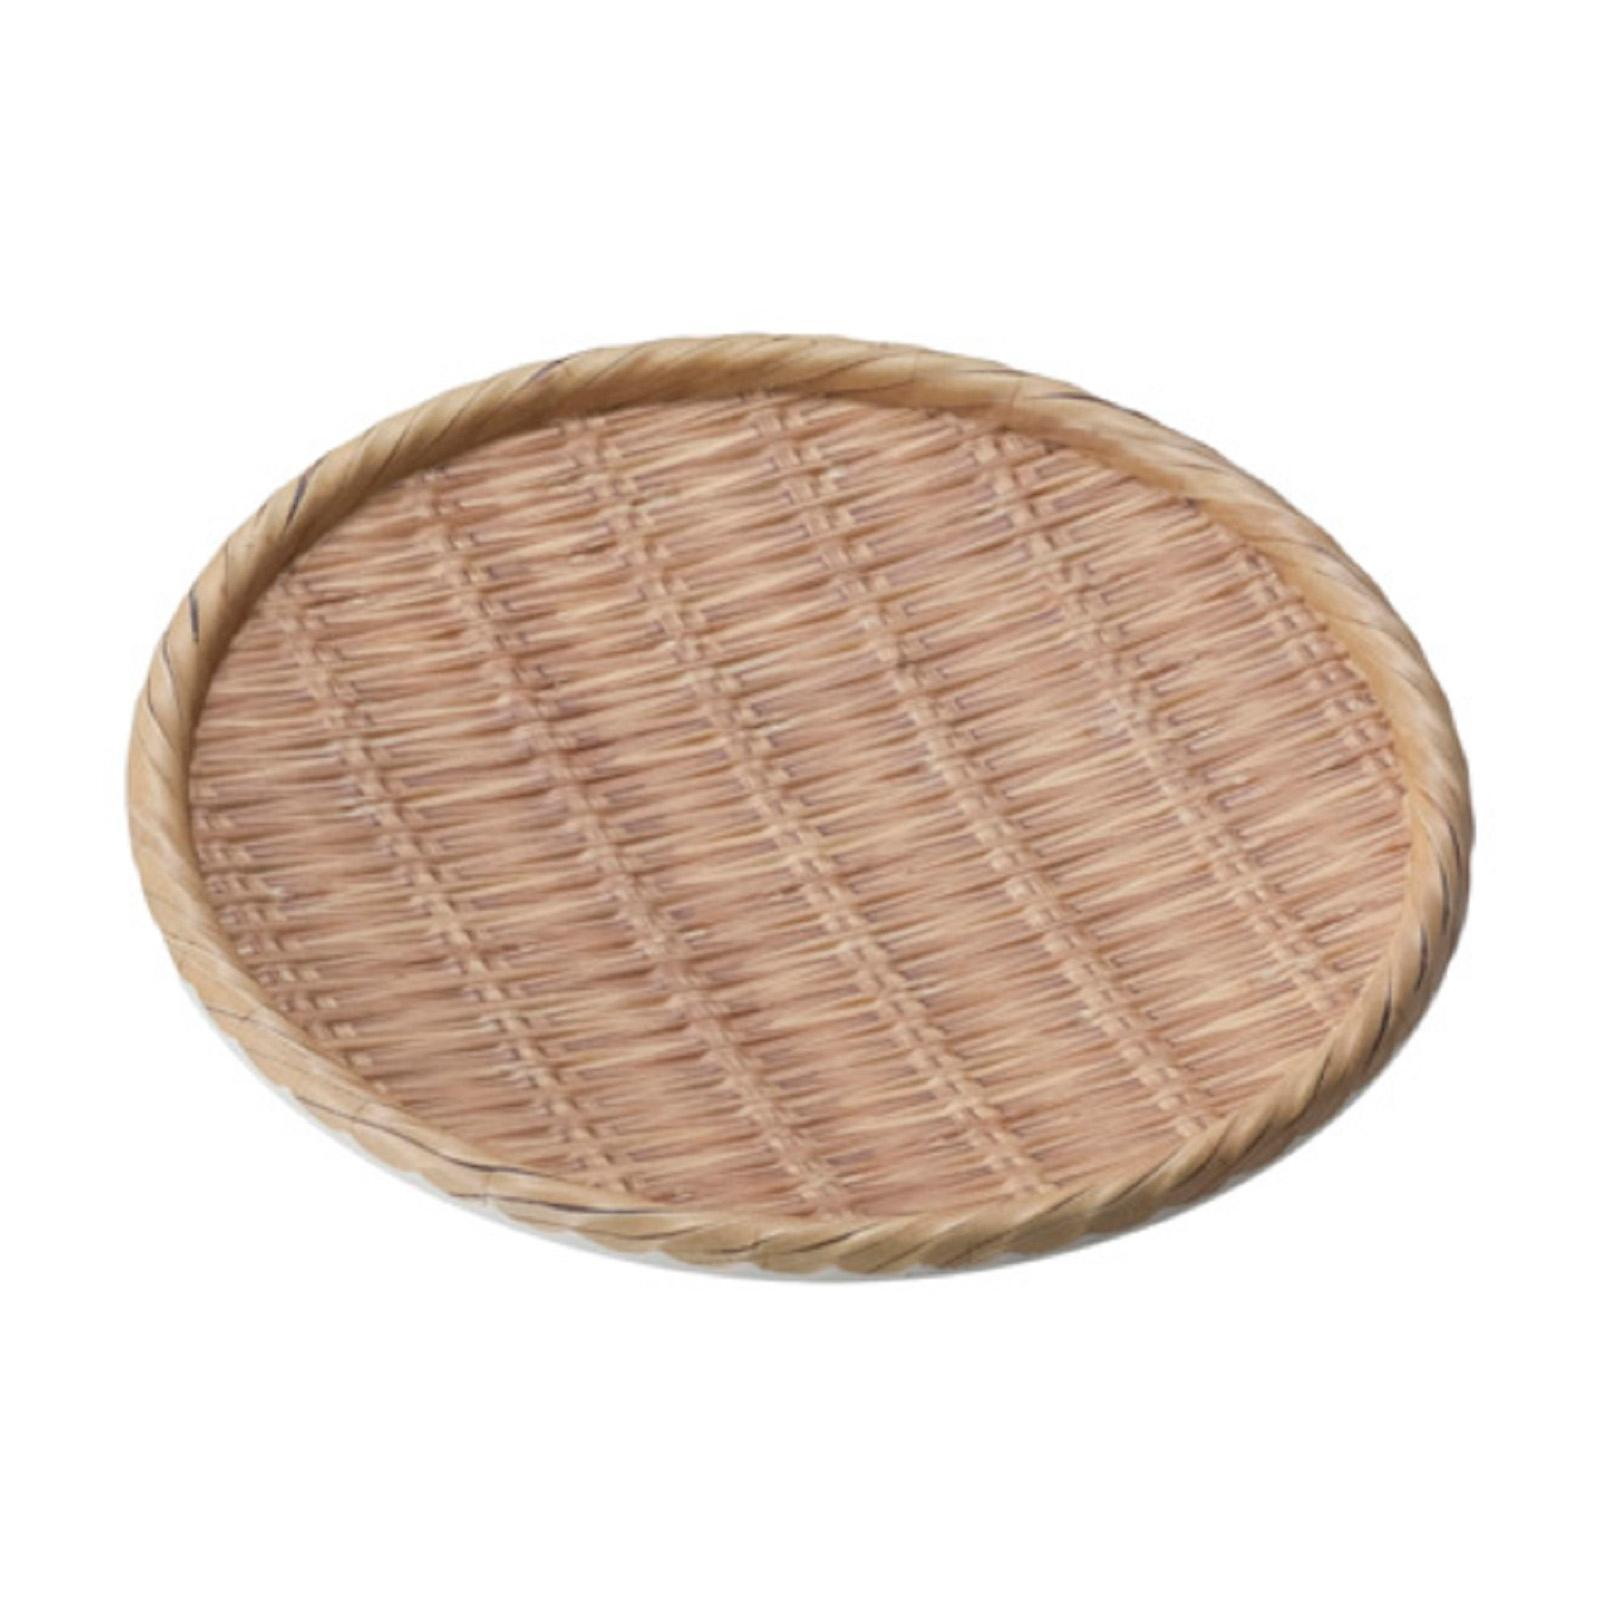 Shun Ta Melamine Round Plate 24 x H3 CM Natural Bamboo - By ToTT